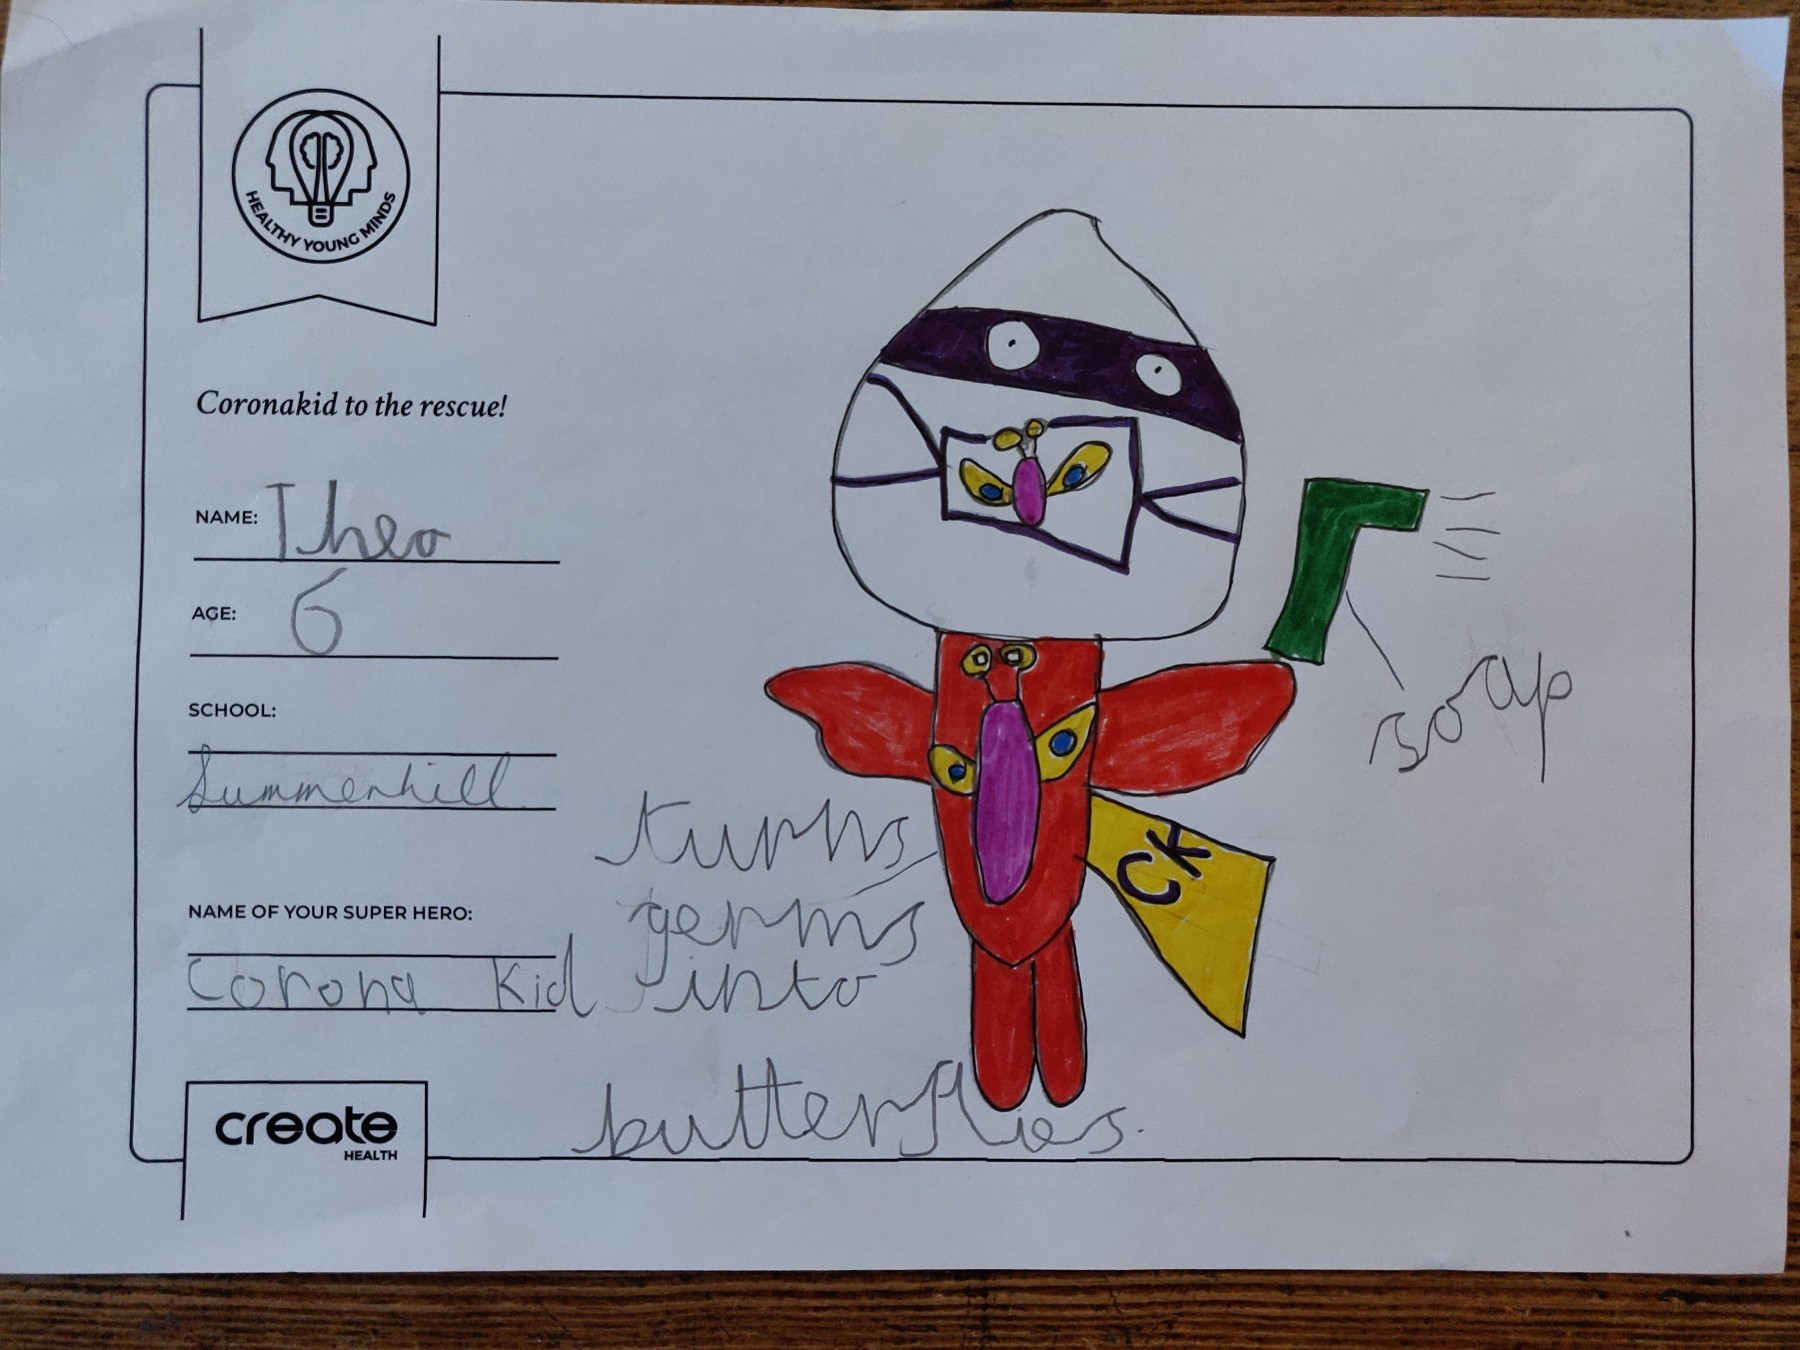 Healthy Young Minds art entrant - Theo - age 6